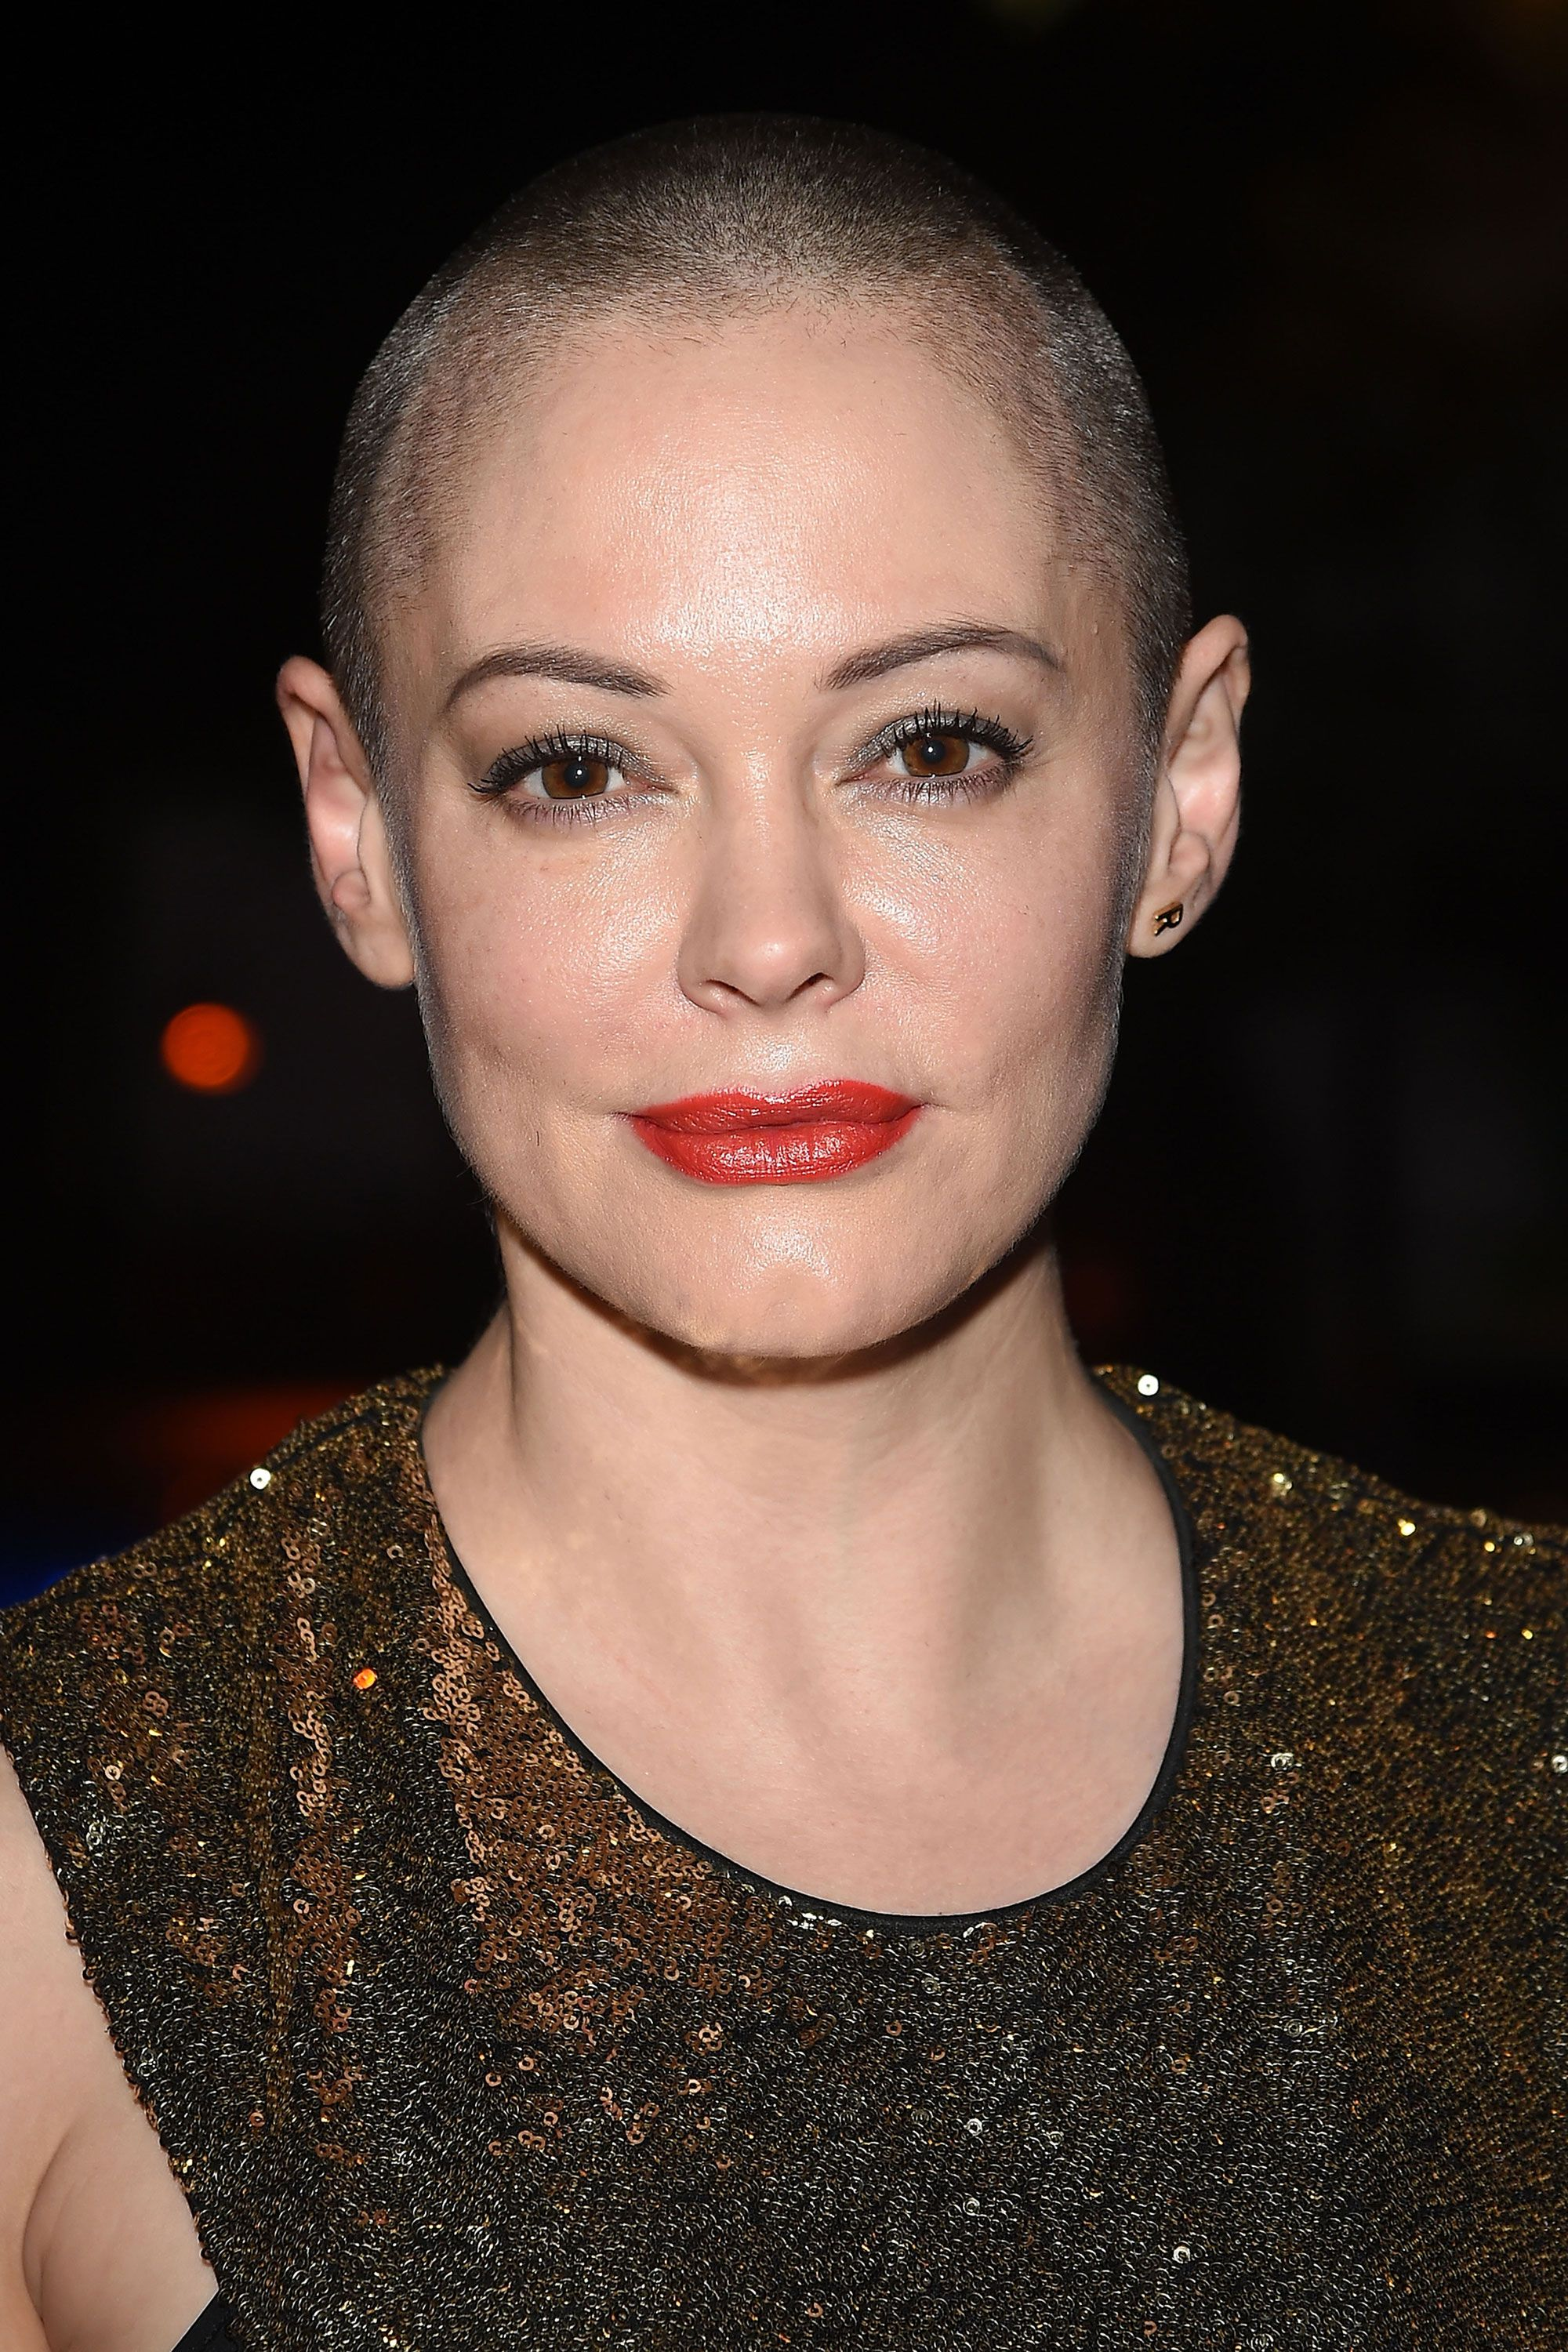 The best A-list buzz cuts